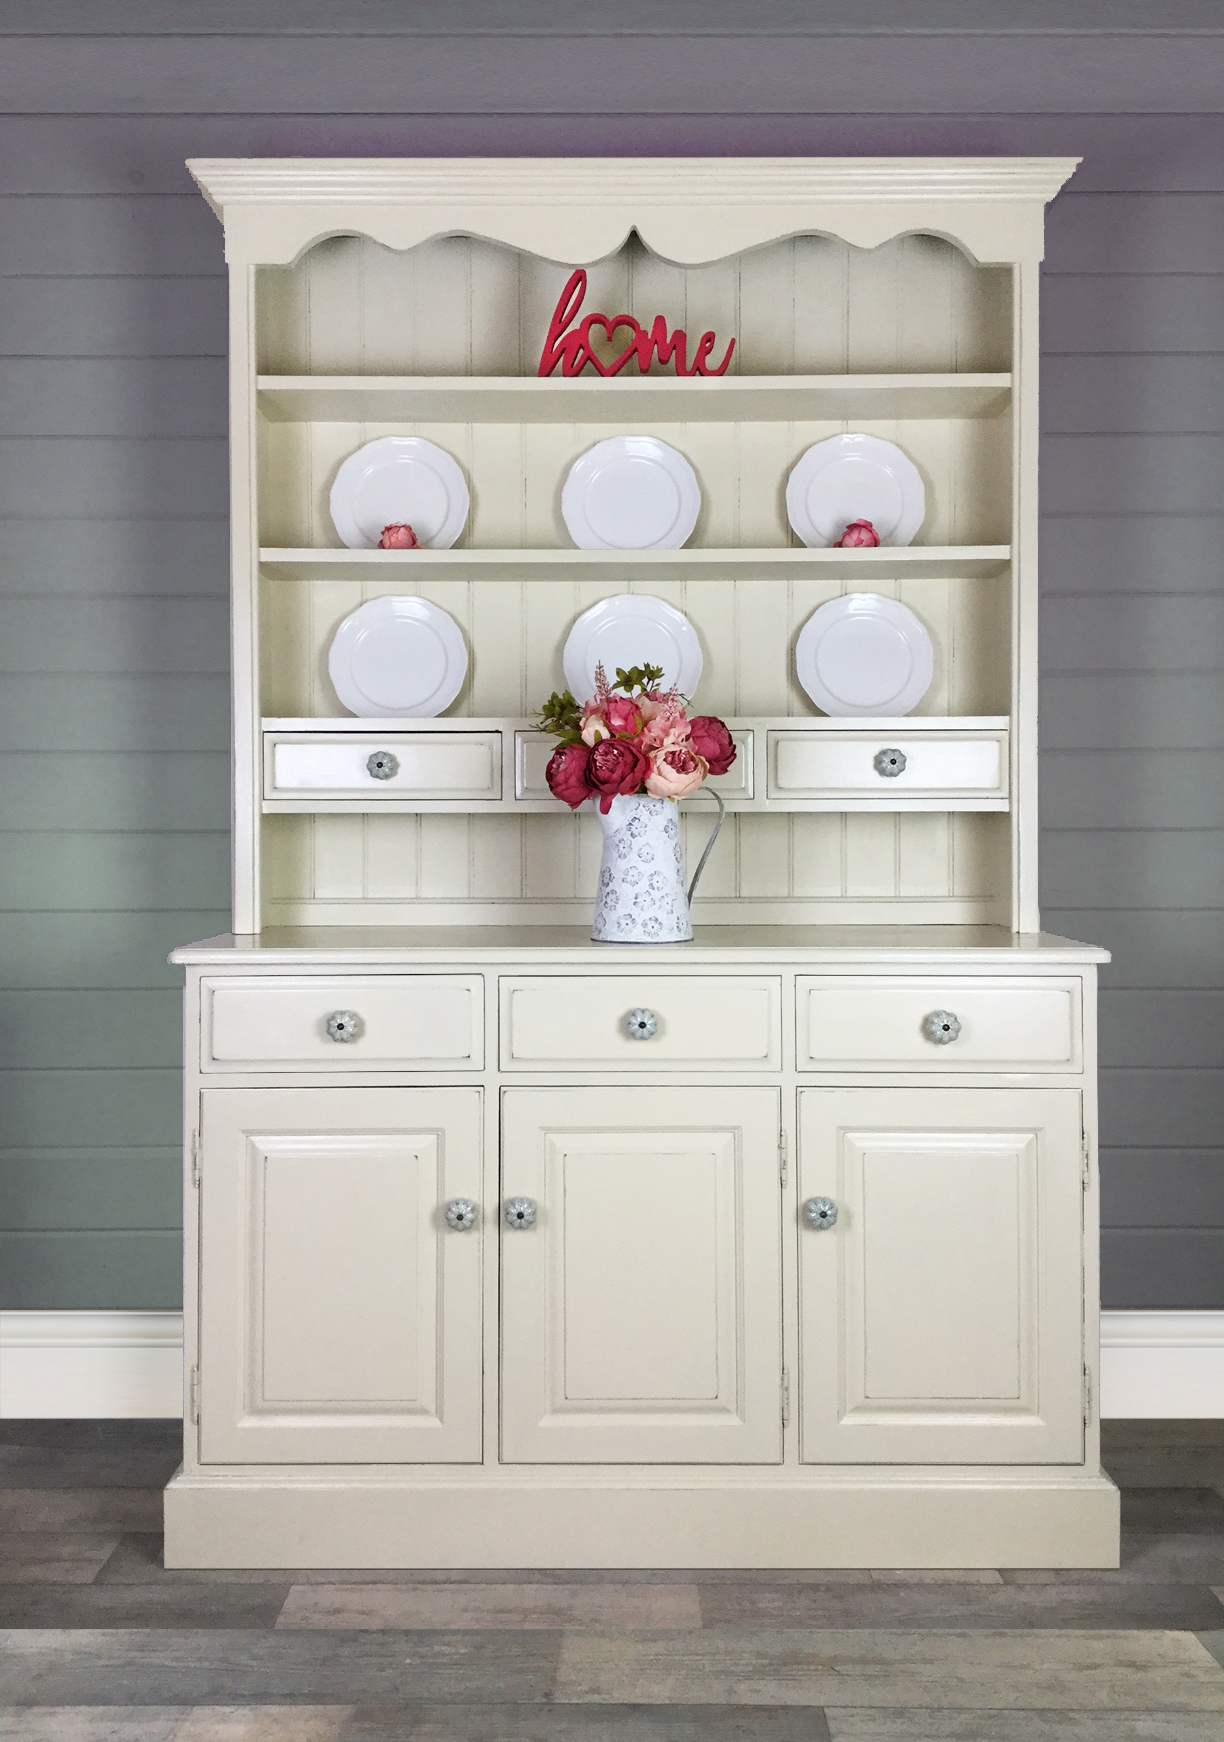 Solid Pine Cream Farmhouse Welsh Dresser Kitchen Cupboard Dining Room Cabinet Painted Upcycled Furniture Vinterior